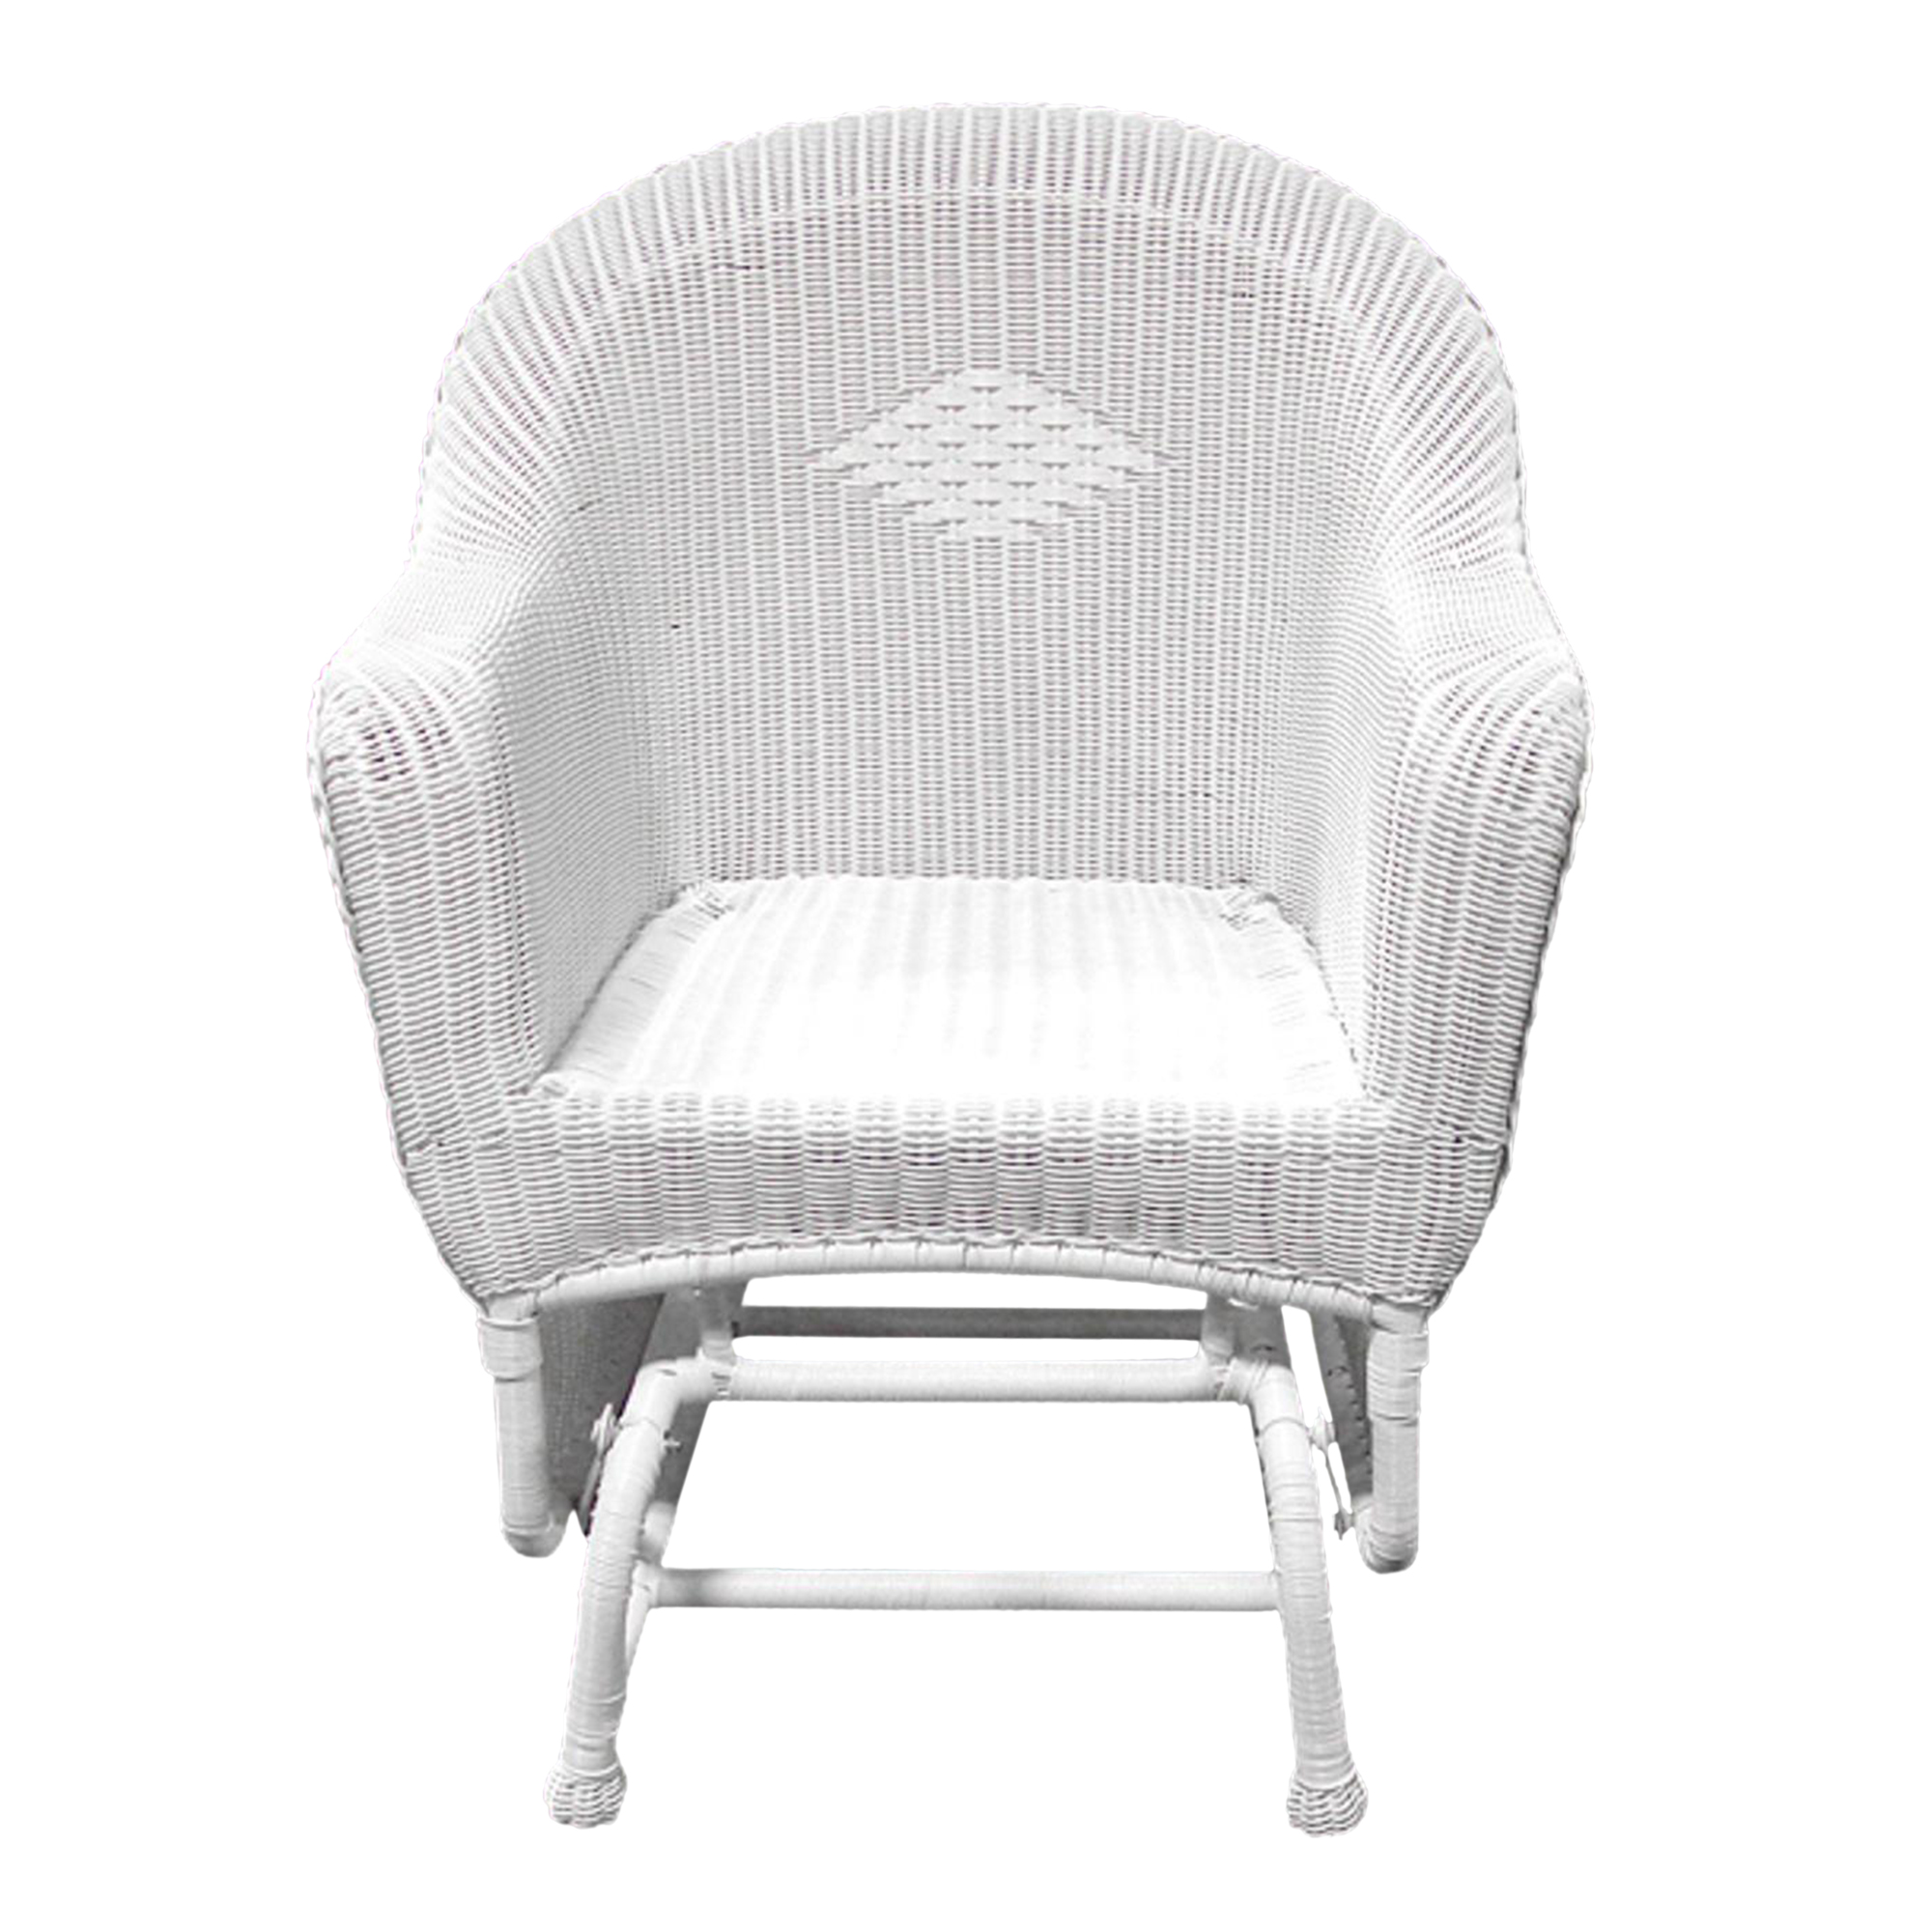 36 white resin wicker single glider outdoor patio chair